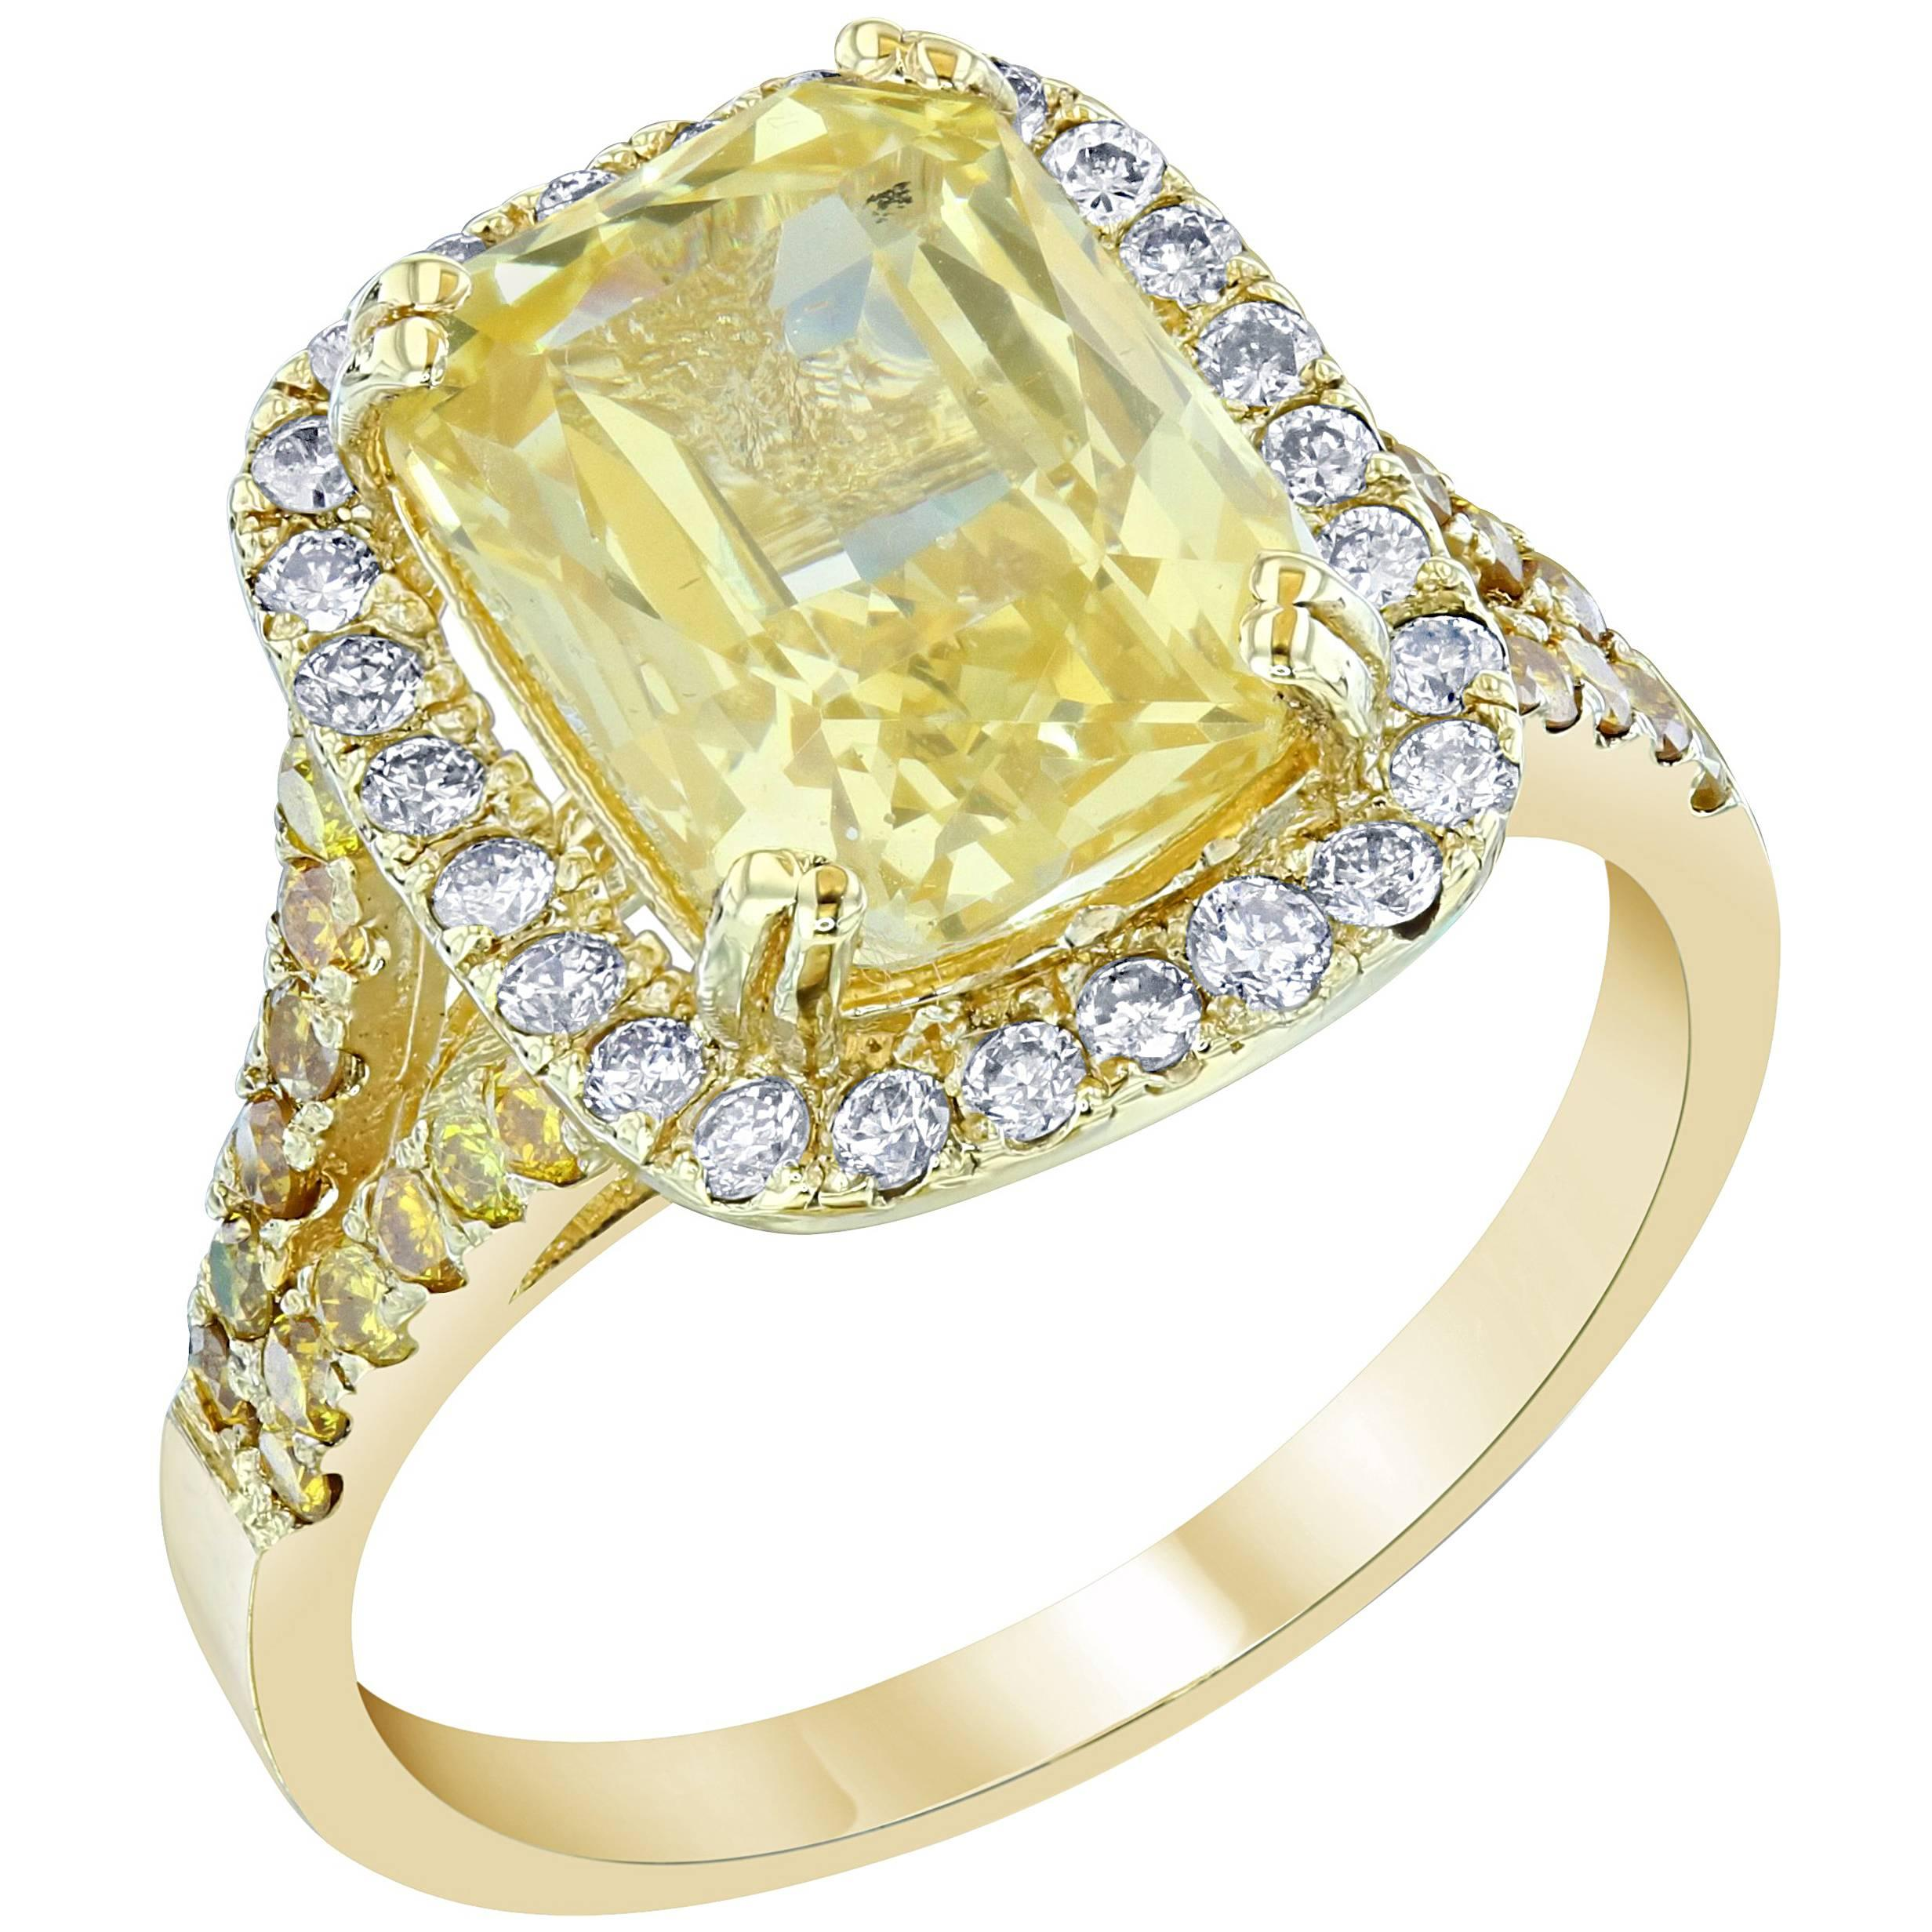 0470165b10a26 GIA Certified 6.42 Carat Yellow Sapphire Diamond Cocktail Ring